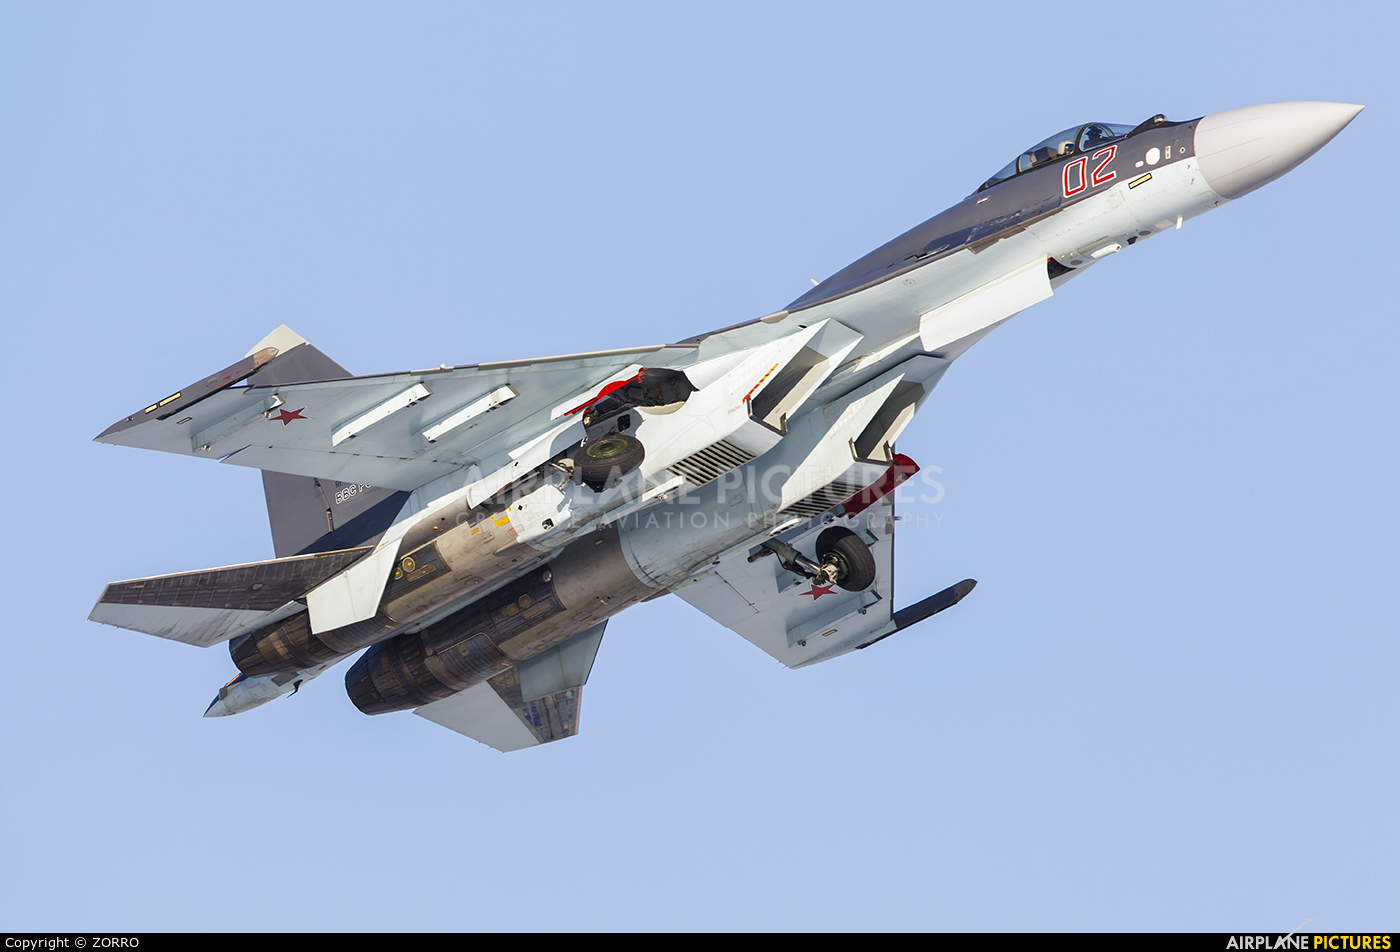 Russia - Air Force 02 aircraft at Off Airport - Russia